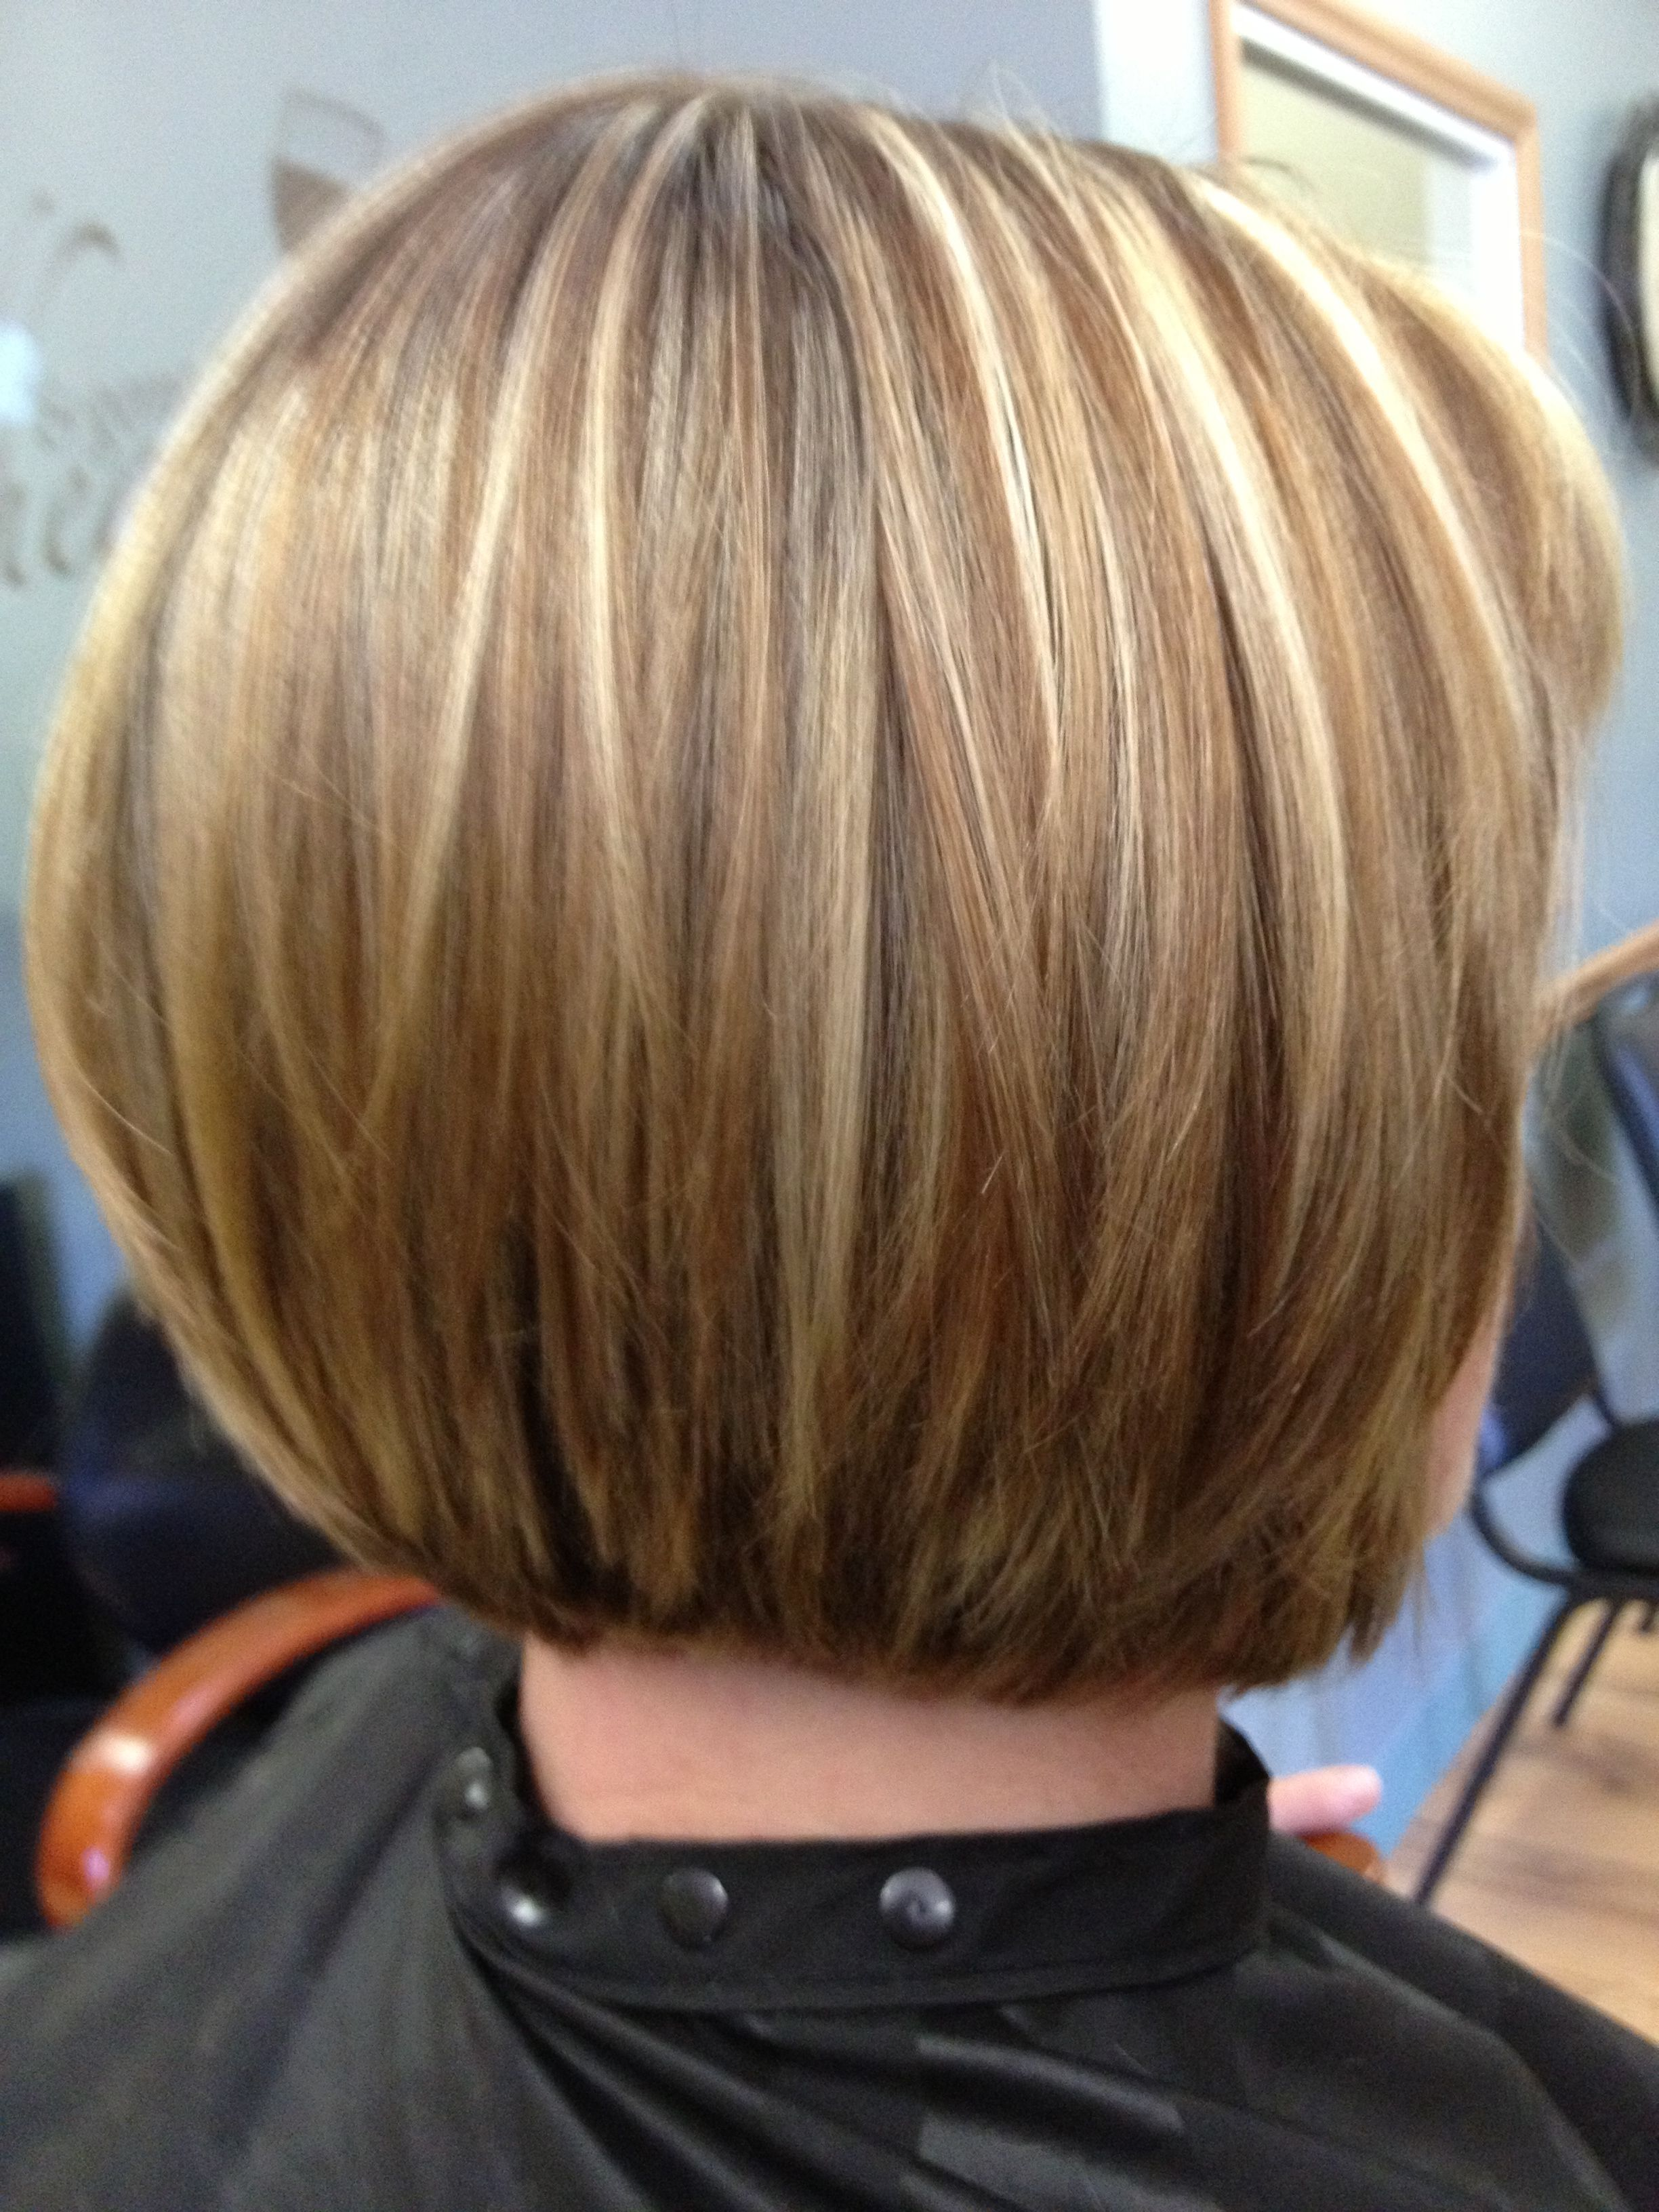 Pin By Melynda Ligget On All Things Hair Hair Styles Swing Bob Hairstyles Short Hair Styles